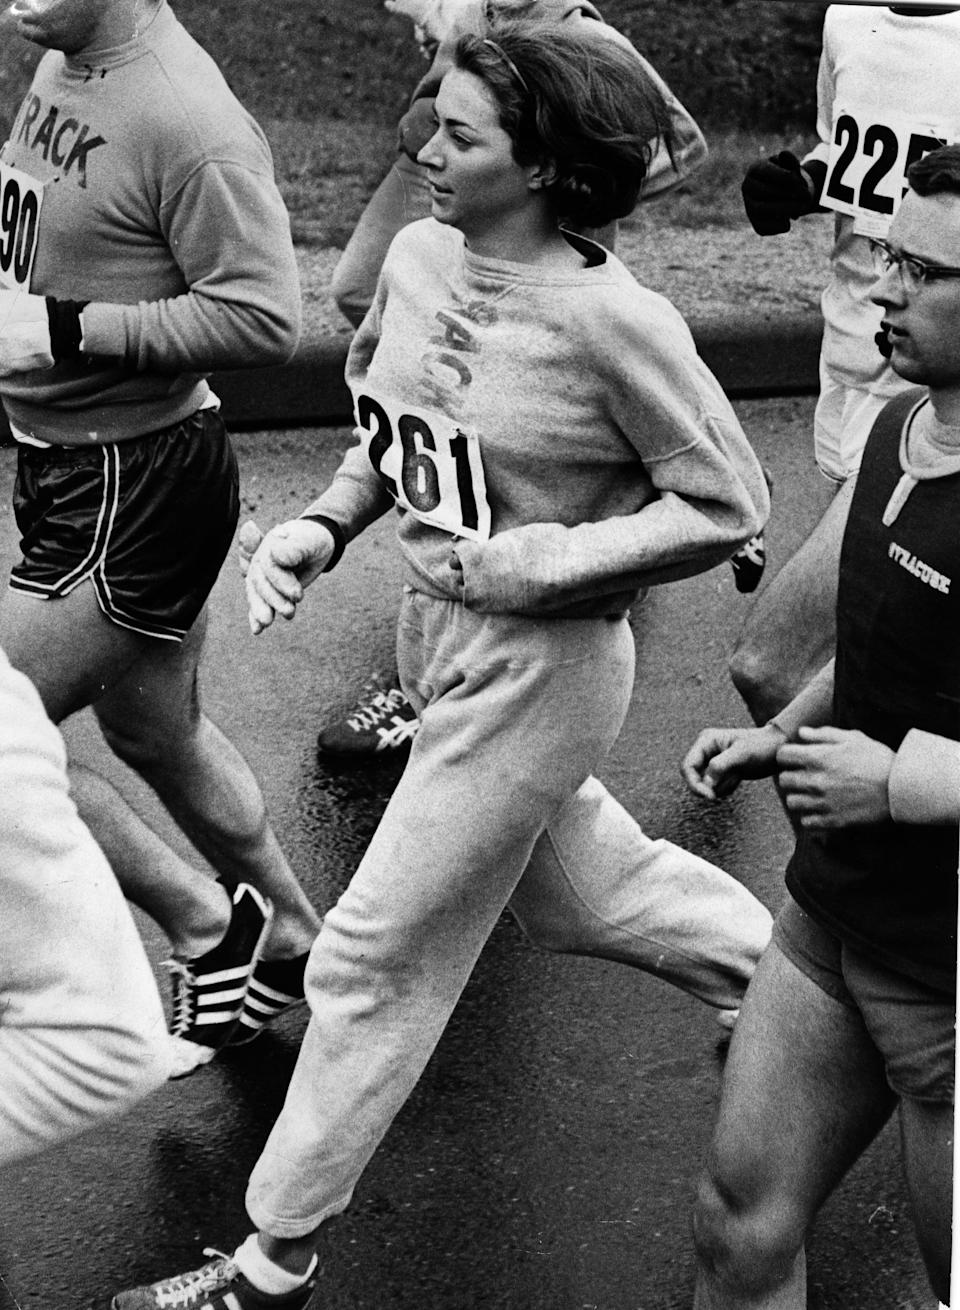 <p>Can you believe that it was as recent as 1967 that Katherine Switzer had to fight for a spot in the Boston marathon? She was famously banned from the race that year, all because she's a woman, and continued to run the race after an official tried to tackle her. She wore a gray sweatsuit with her Adidas sneakers, letting us all know (as if we needed a reminder), sweatsuits mean business.</p>